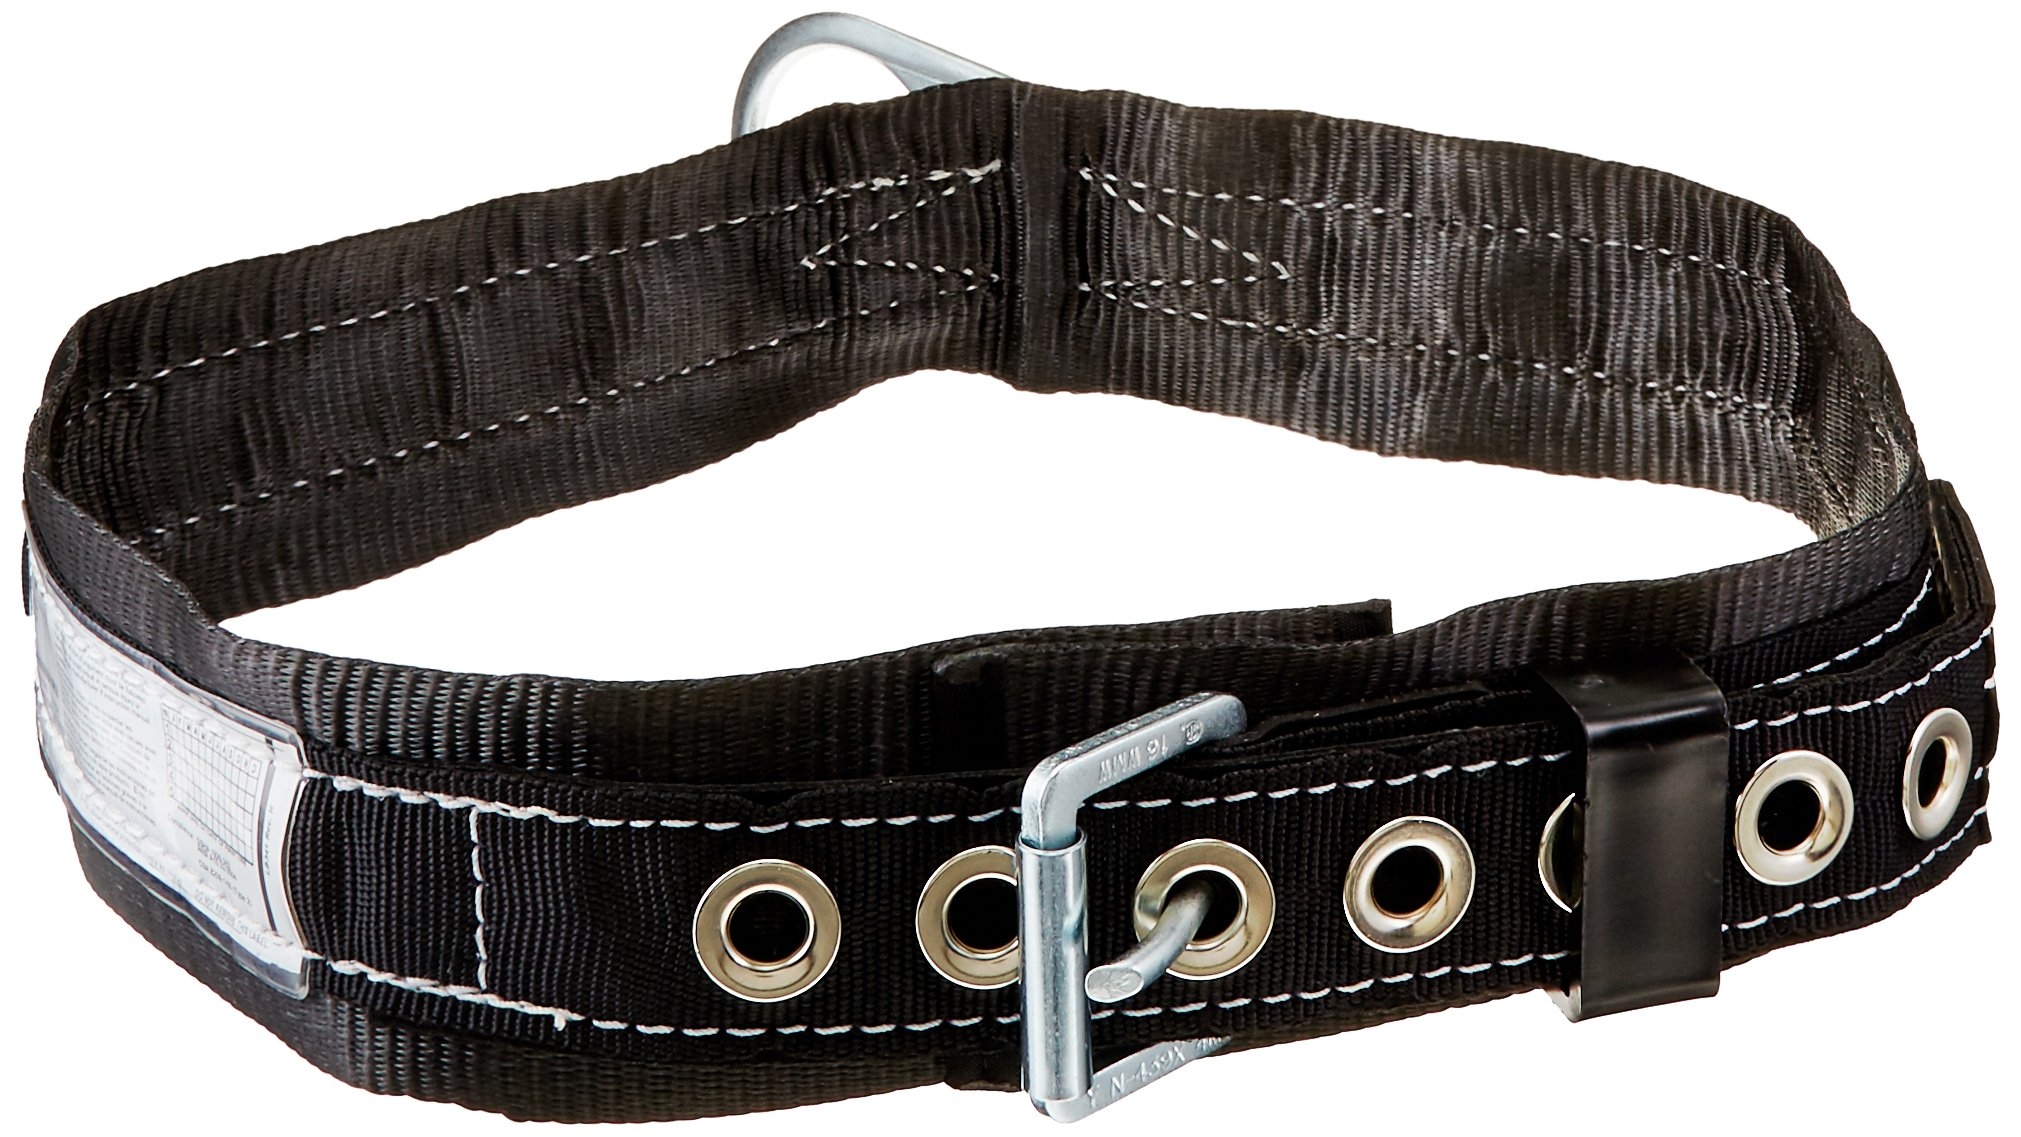 Miller by Honeywell 3NA/XLBK Single D-Ring Safety Body Belt with 1-3/4-Inch Webbing and 3-Inch Back Pad, X-Large, Black